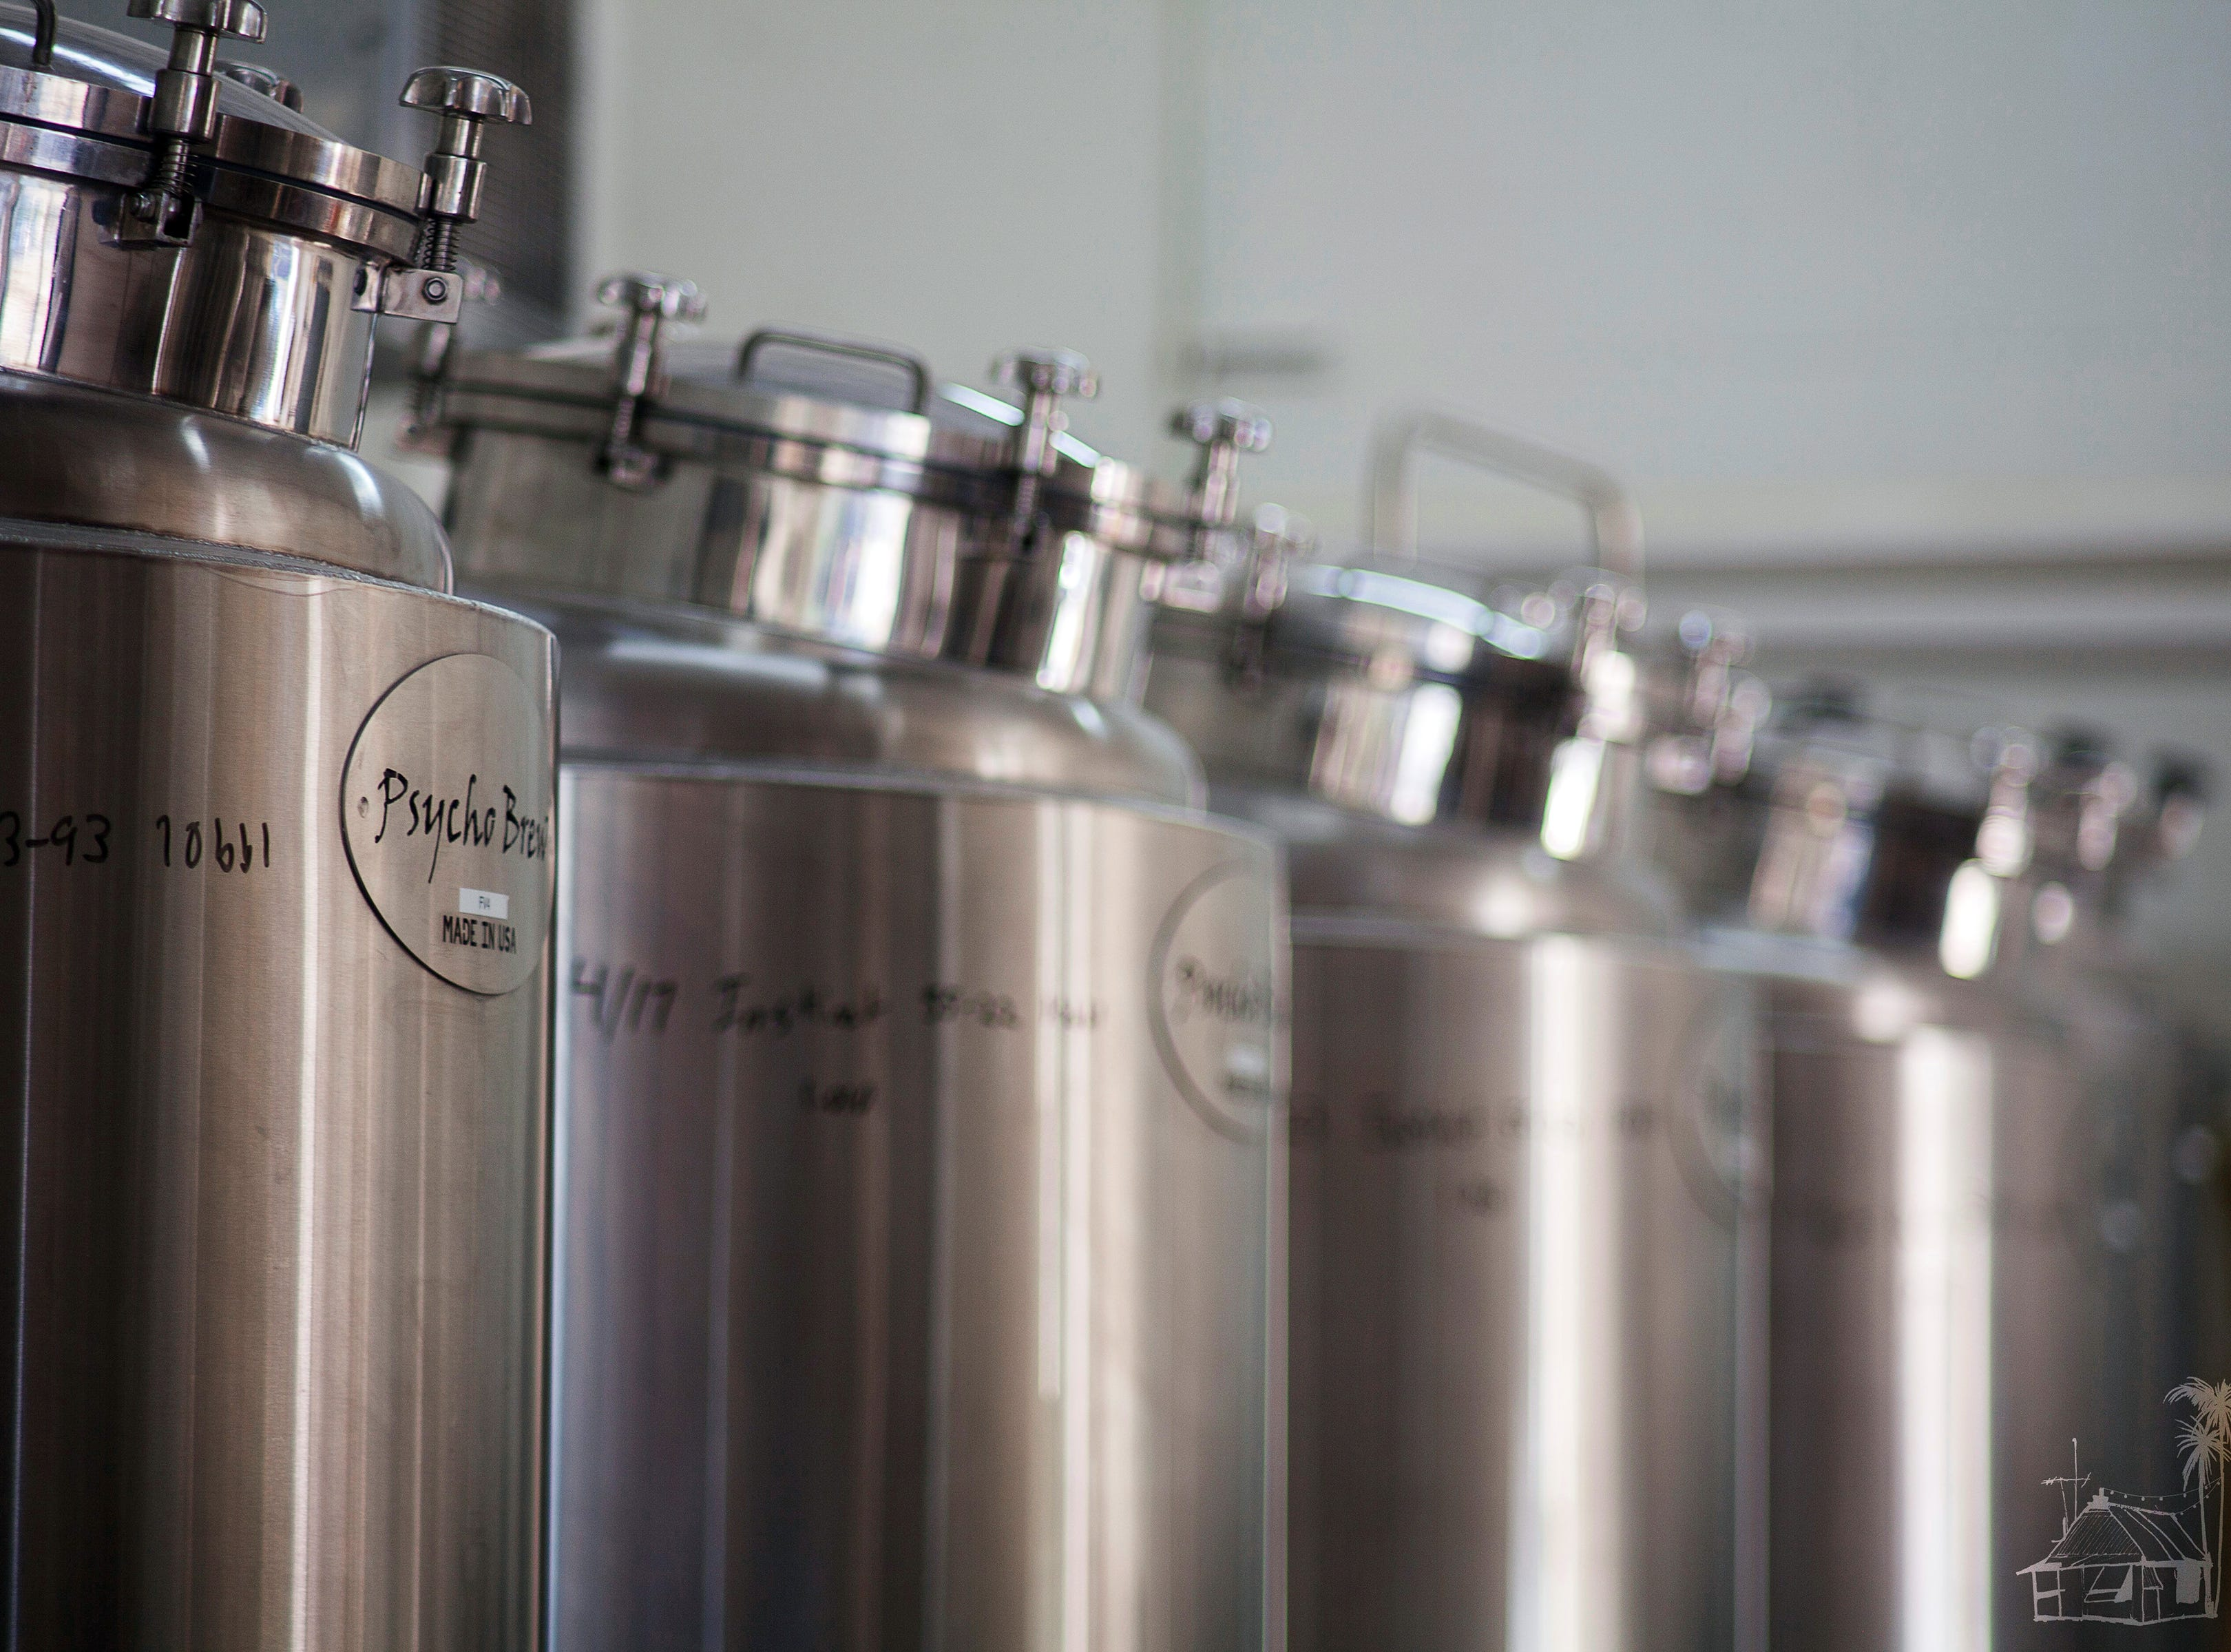 Momentum Brewhouse in Bonita Springs has a five-barrel system for brewing craft beers.